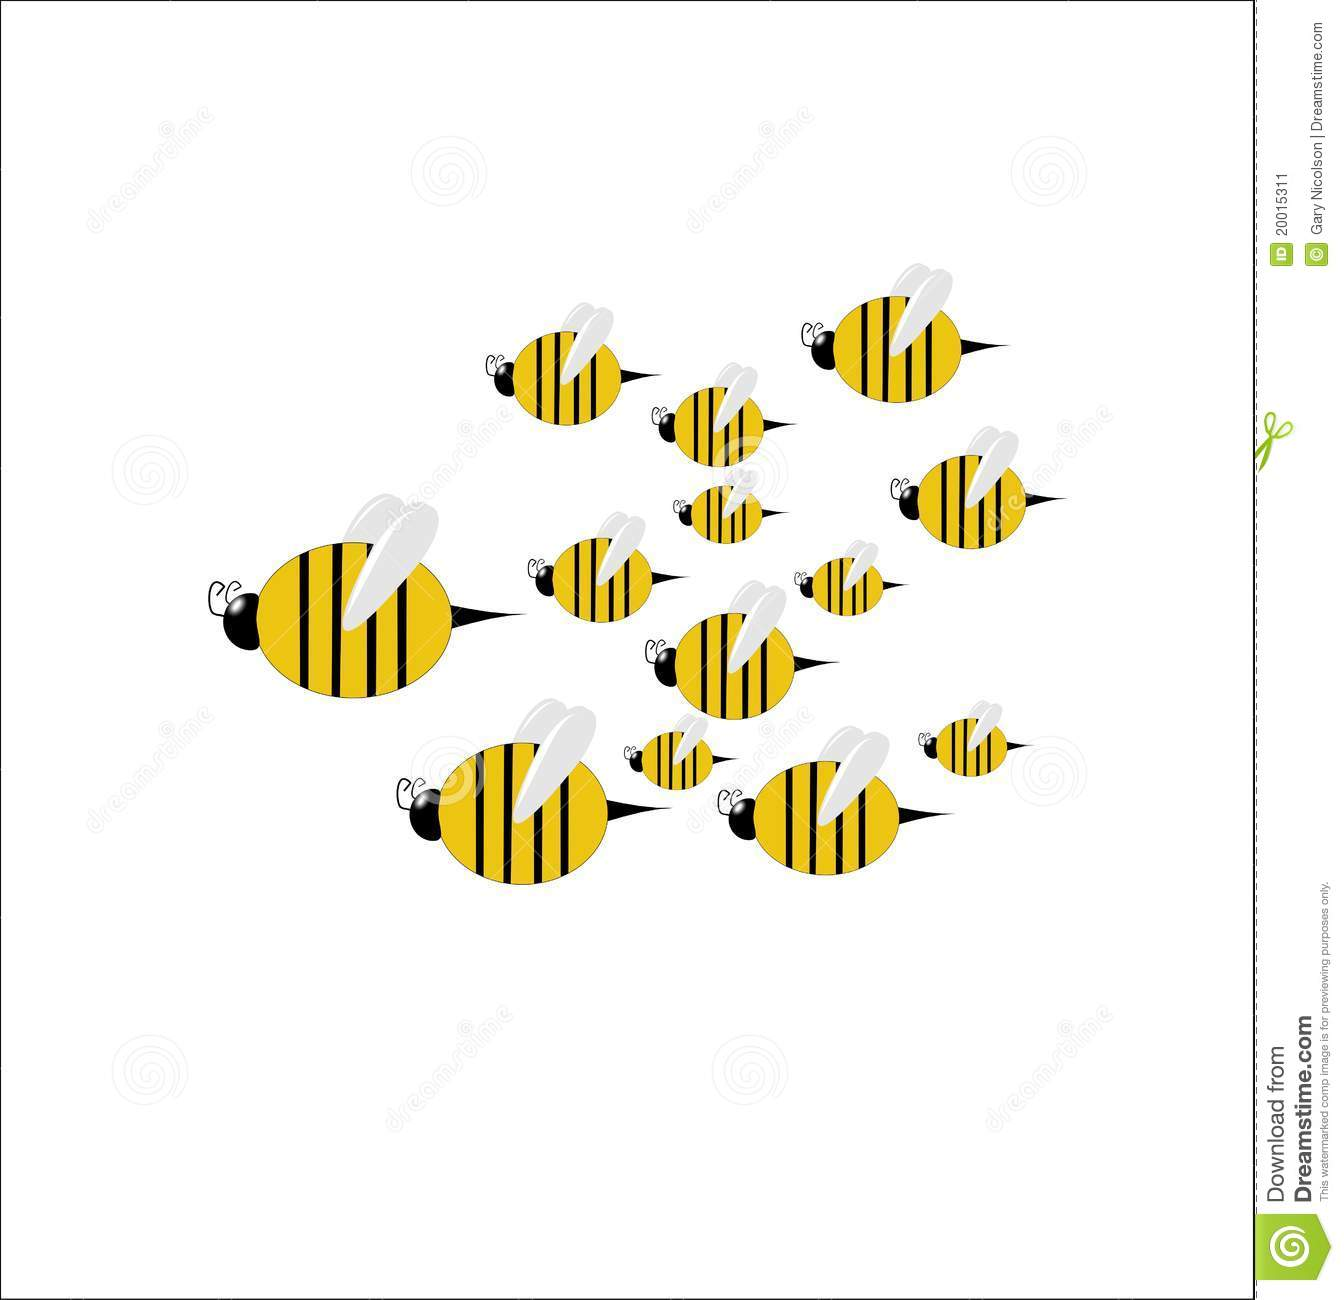 Swarm of large and small bees on white illustration clip art.